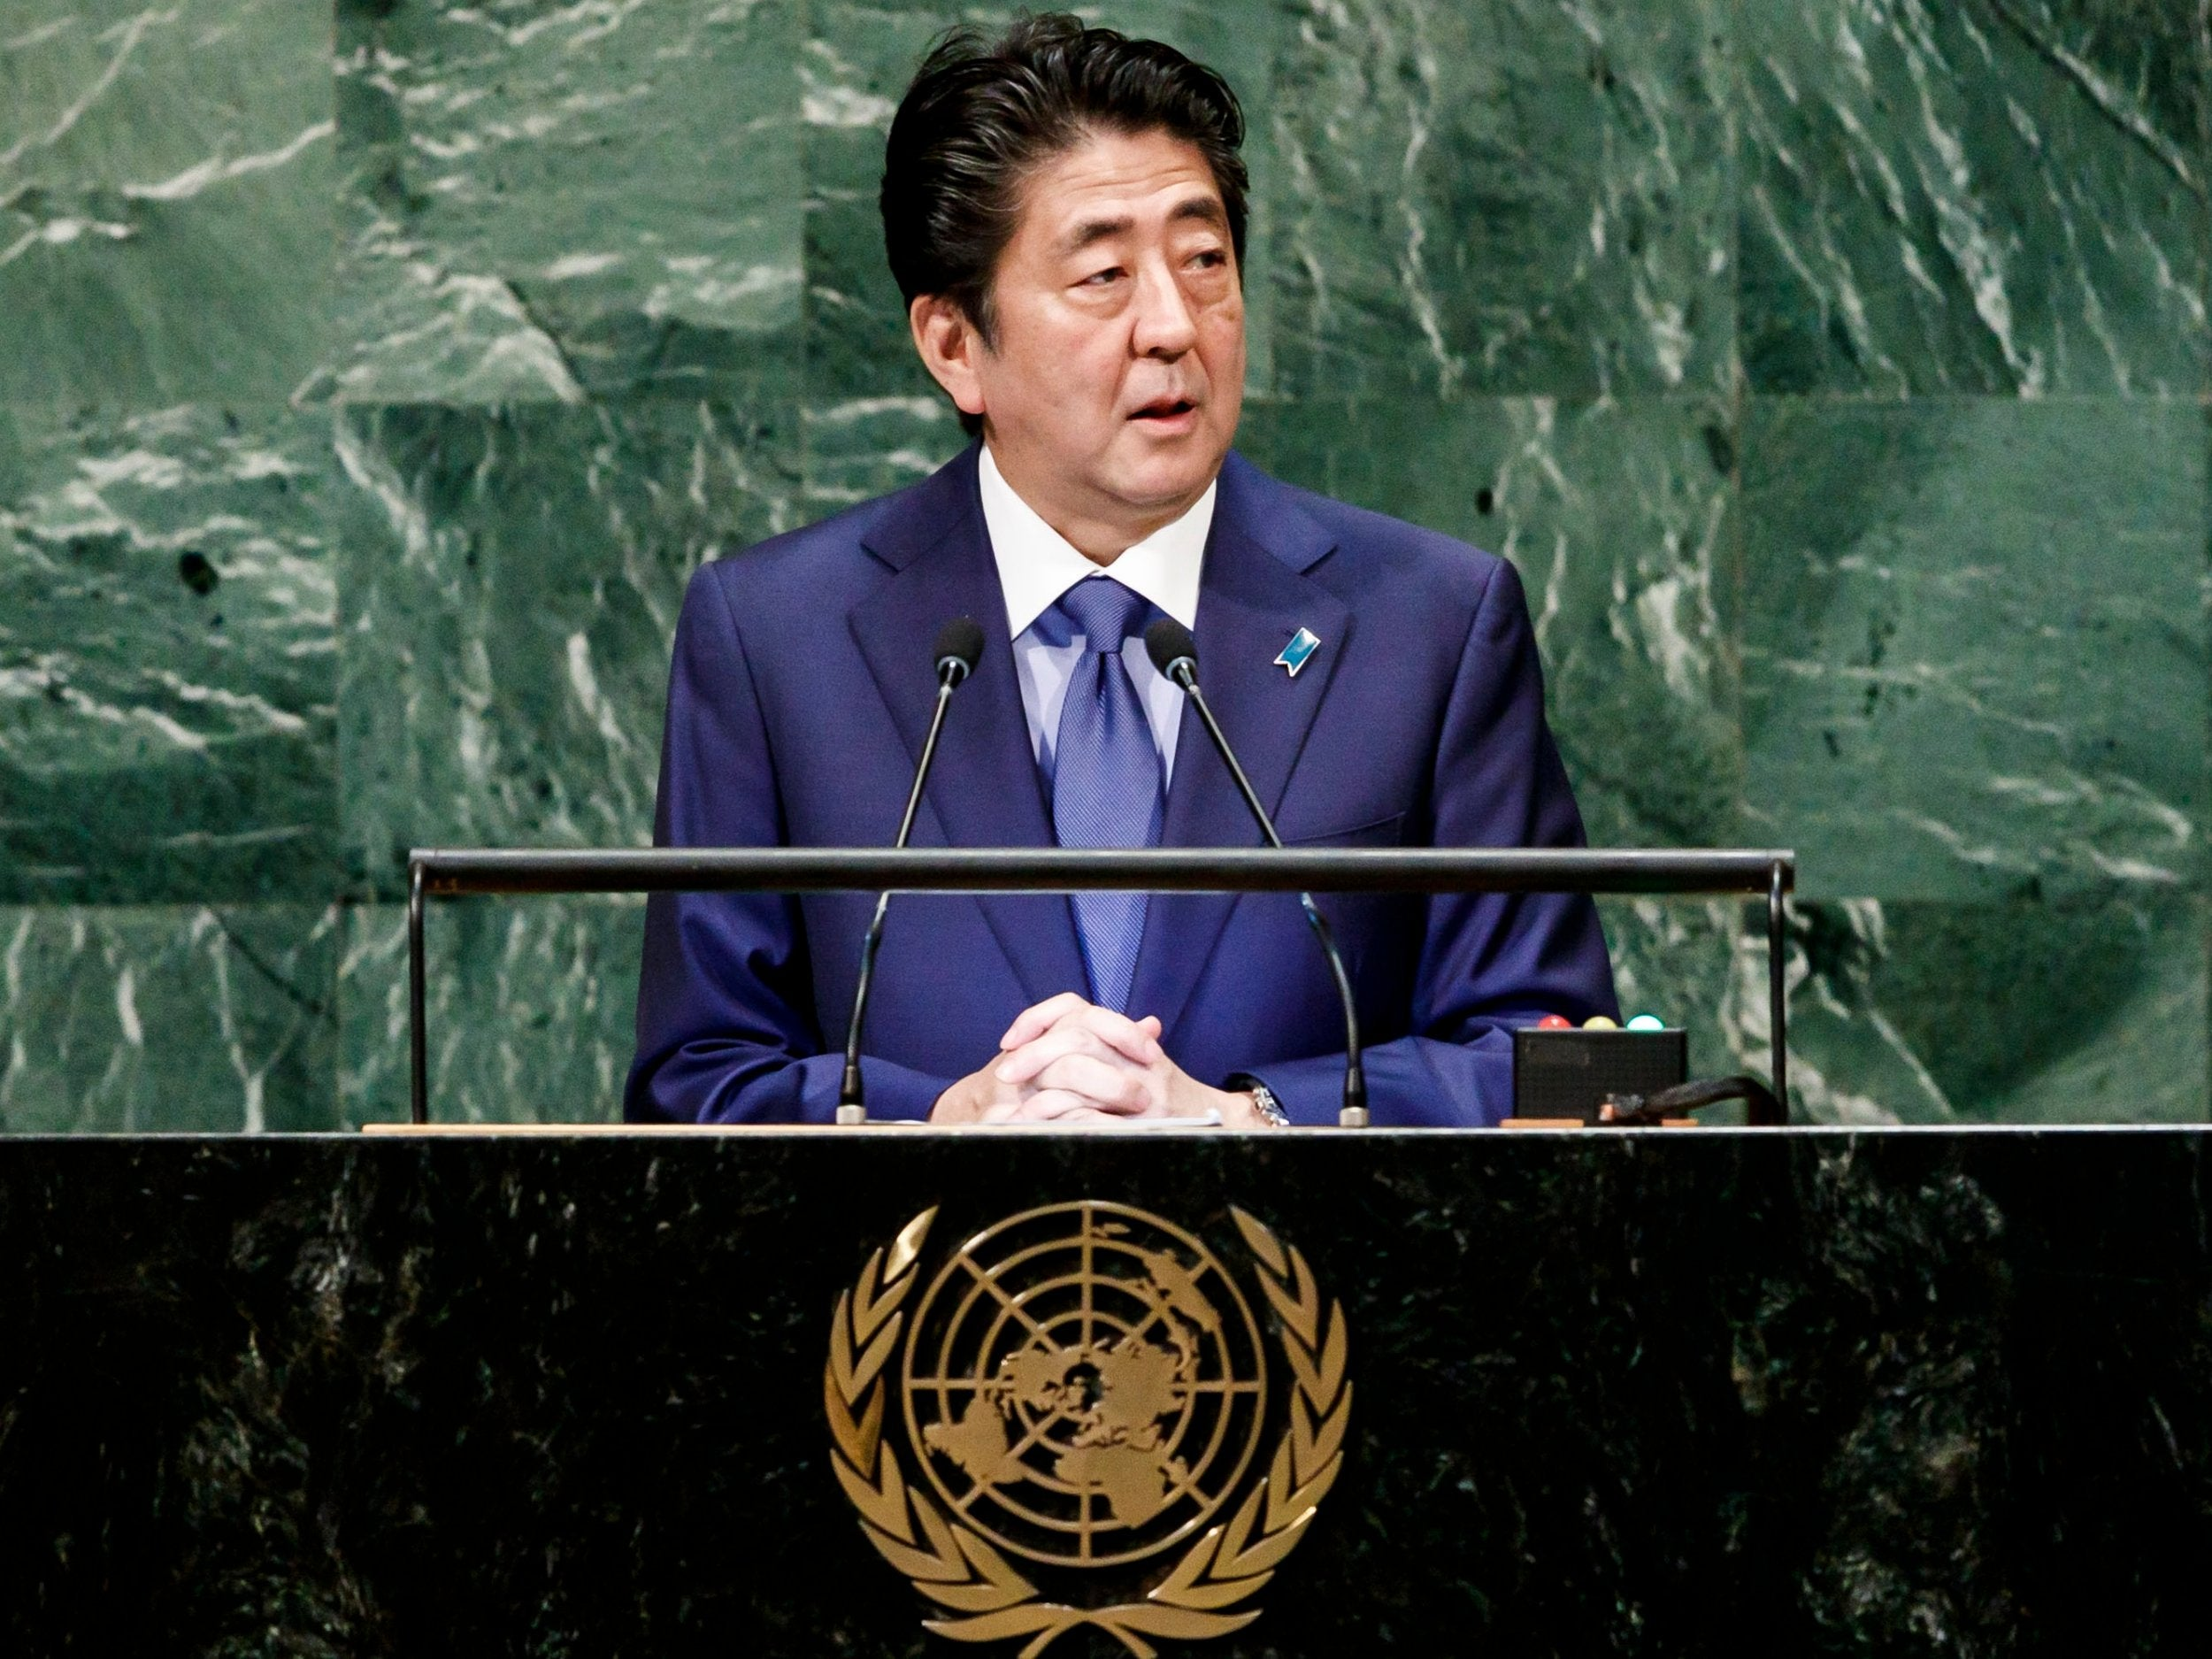 Japan's Shinzo Abe says he could meet Kim Jong-un face-to-face and 'break the shell of distrust' with North Korea